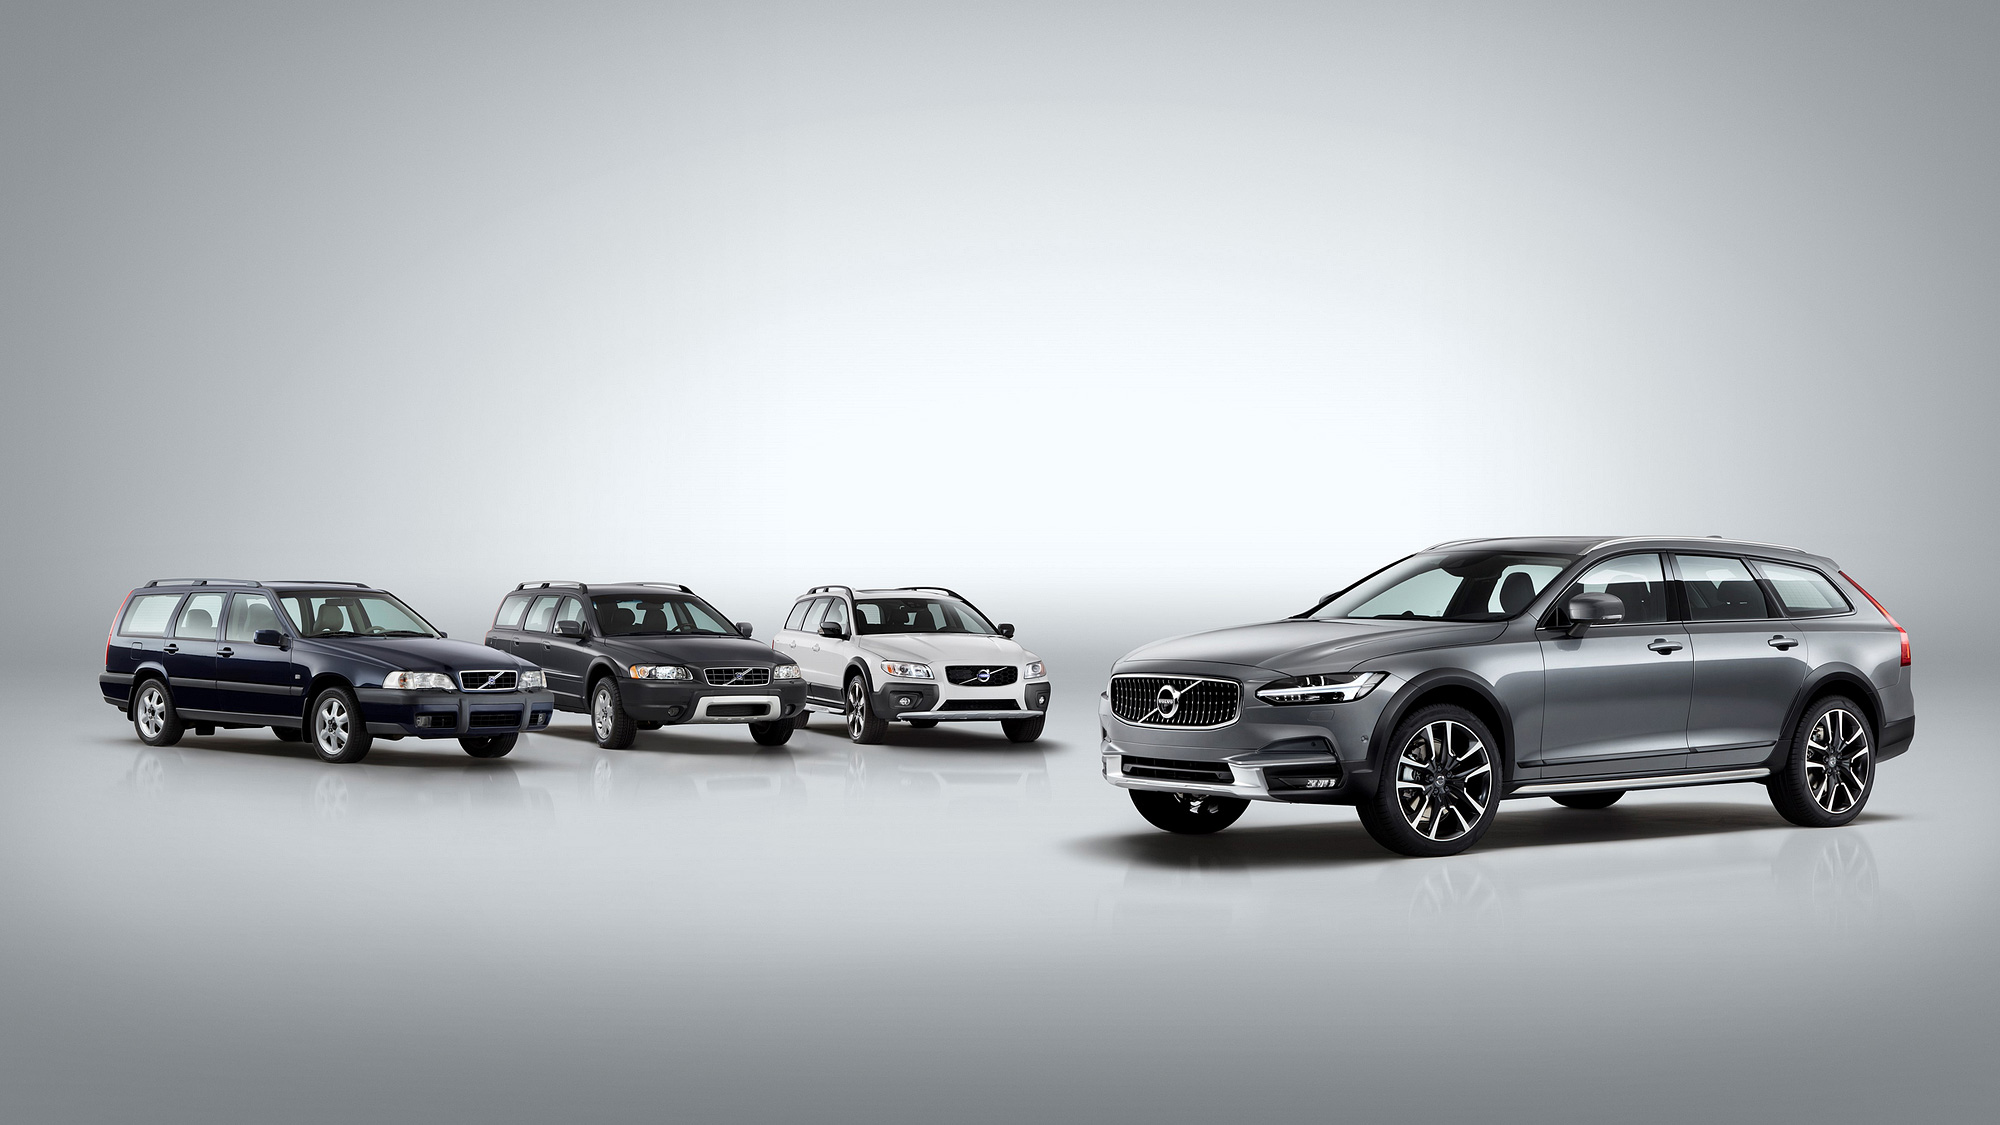 Volvo V90 Cross Country 獲 Digital Trends 最佳豪華家庭車款肯定